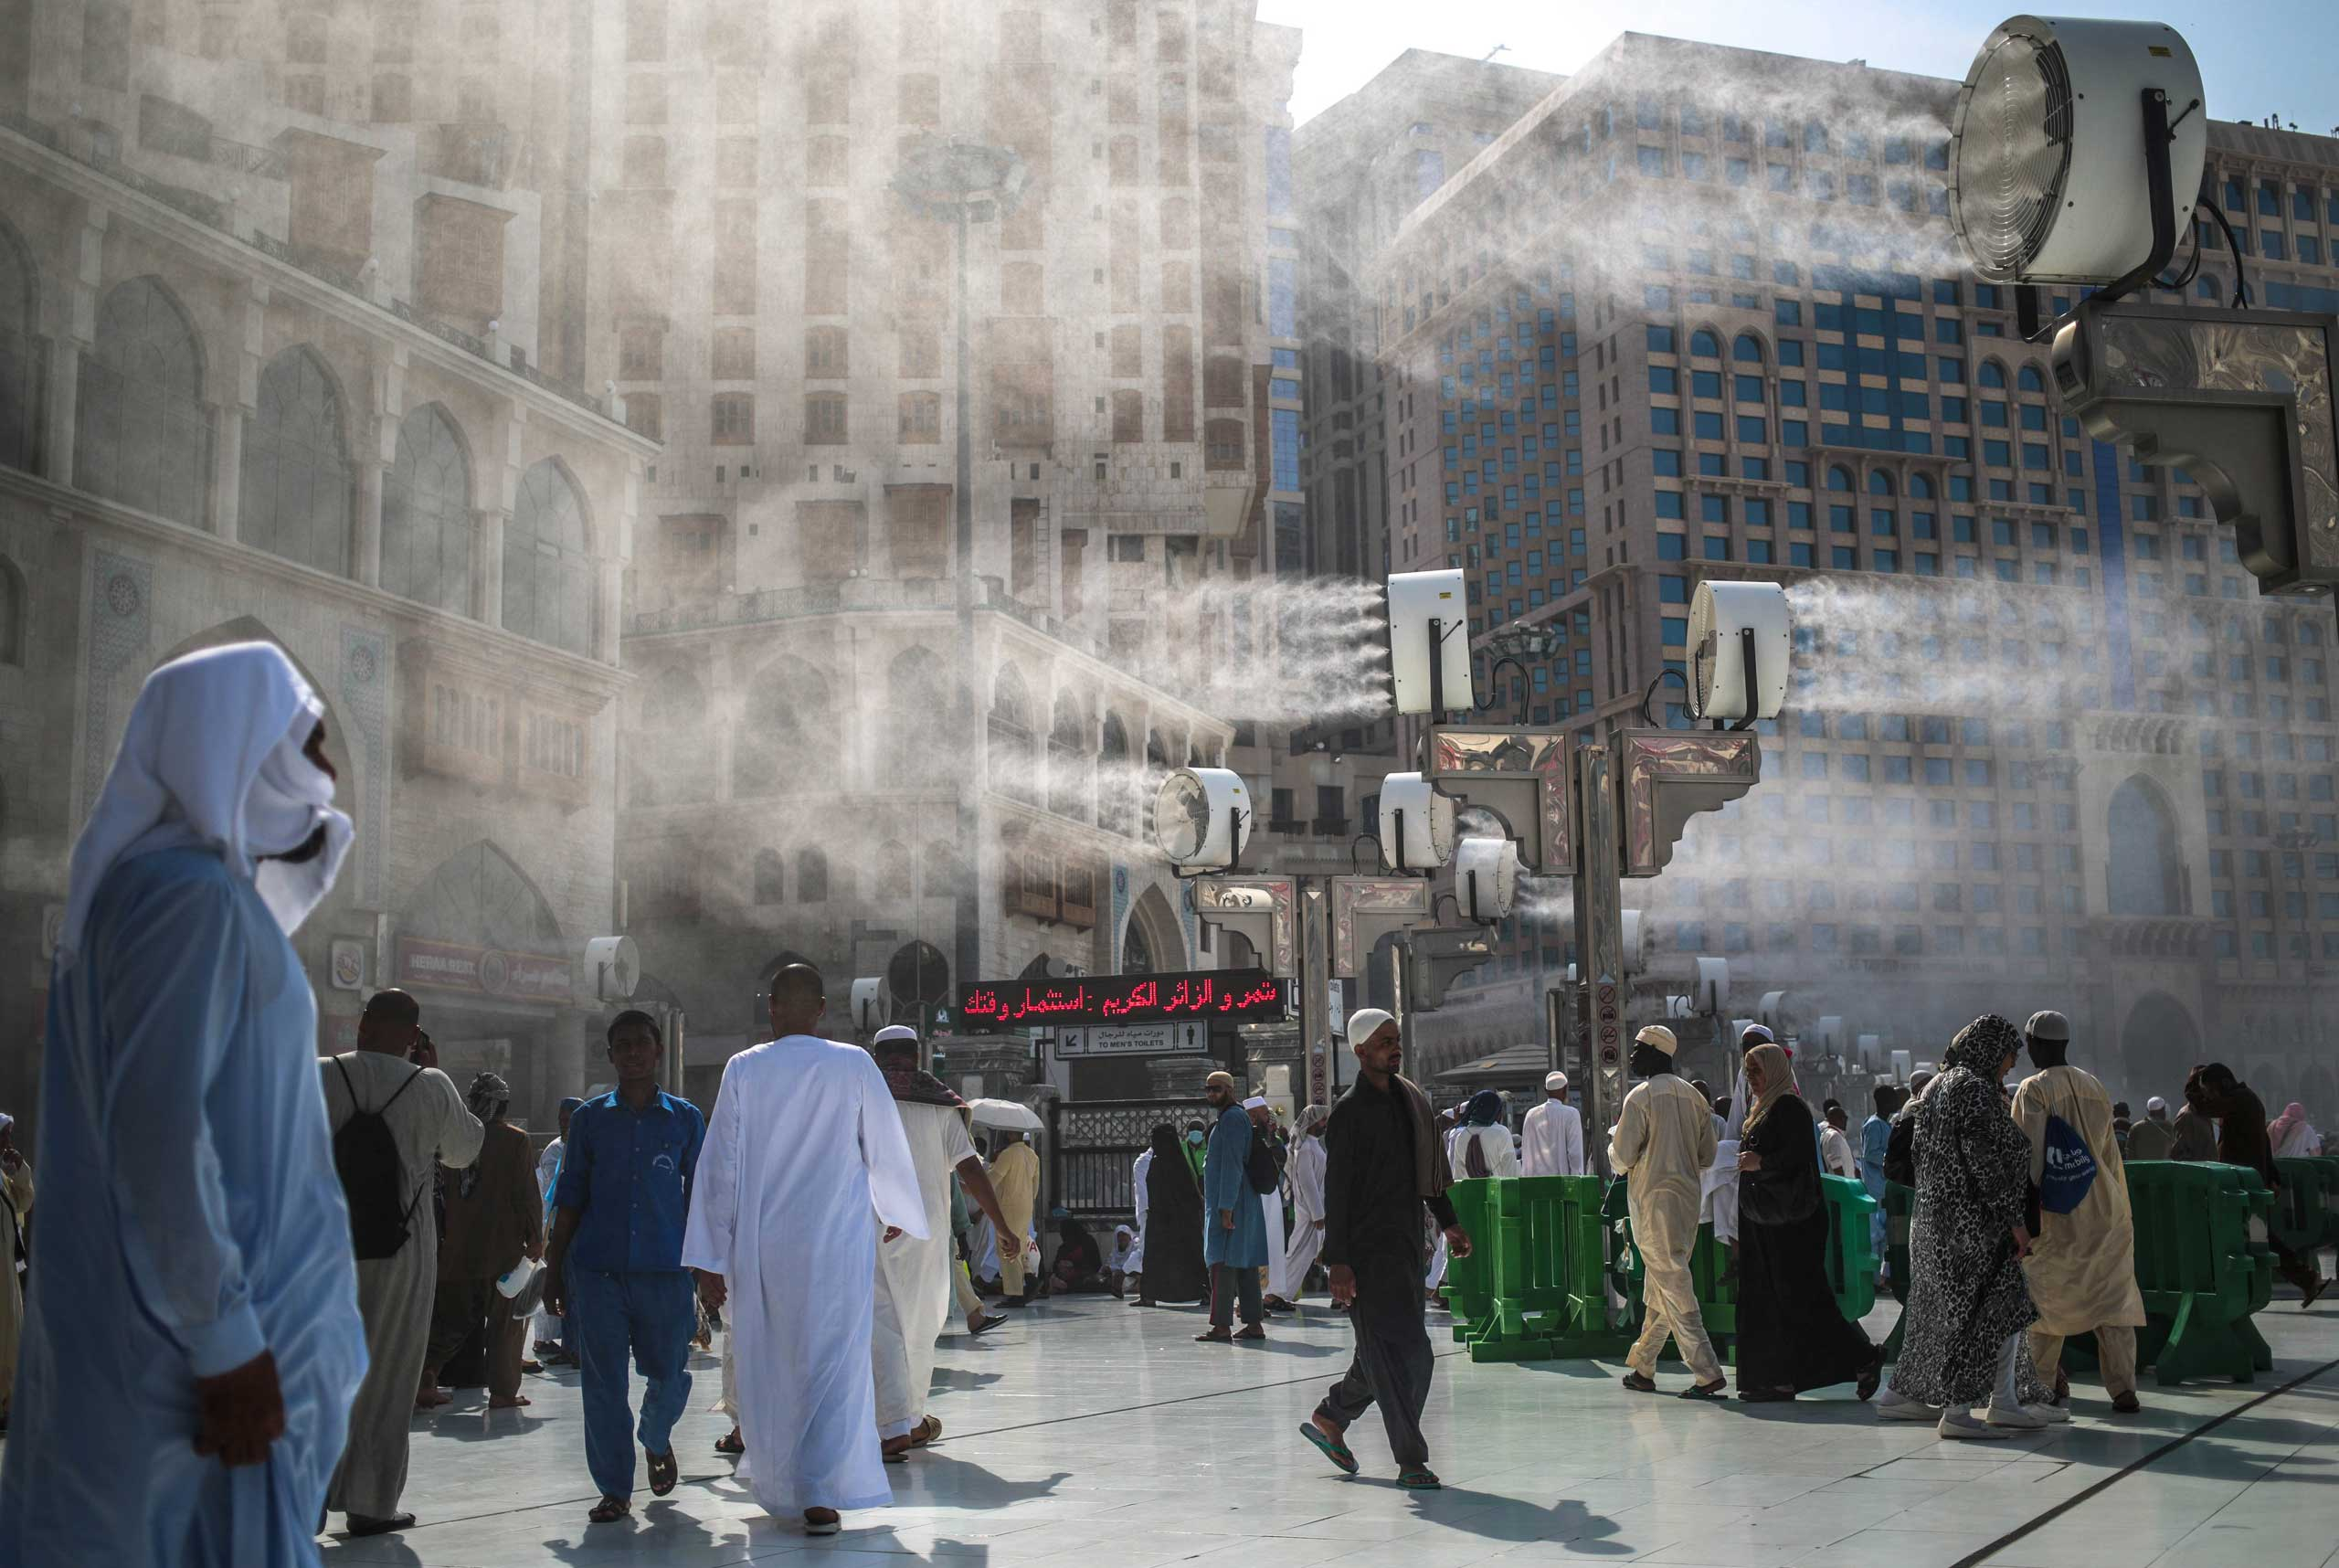 Water is sprayed over Muslim pilgrims to cool them down during the afternoon heat as they walk outside the Grand Mosque in the holy city of Mecca, on Sept. 15, 2015.